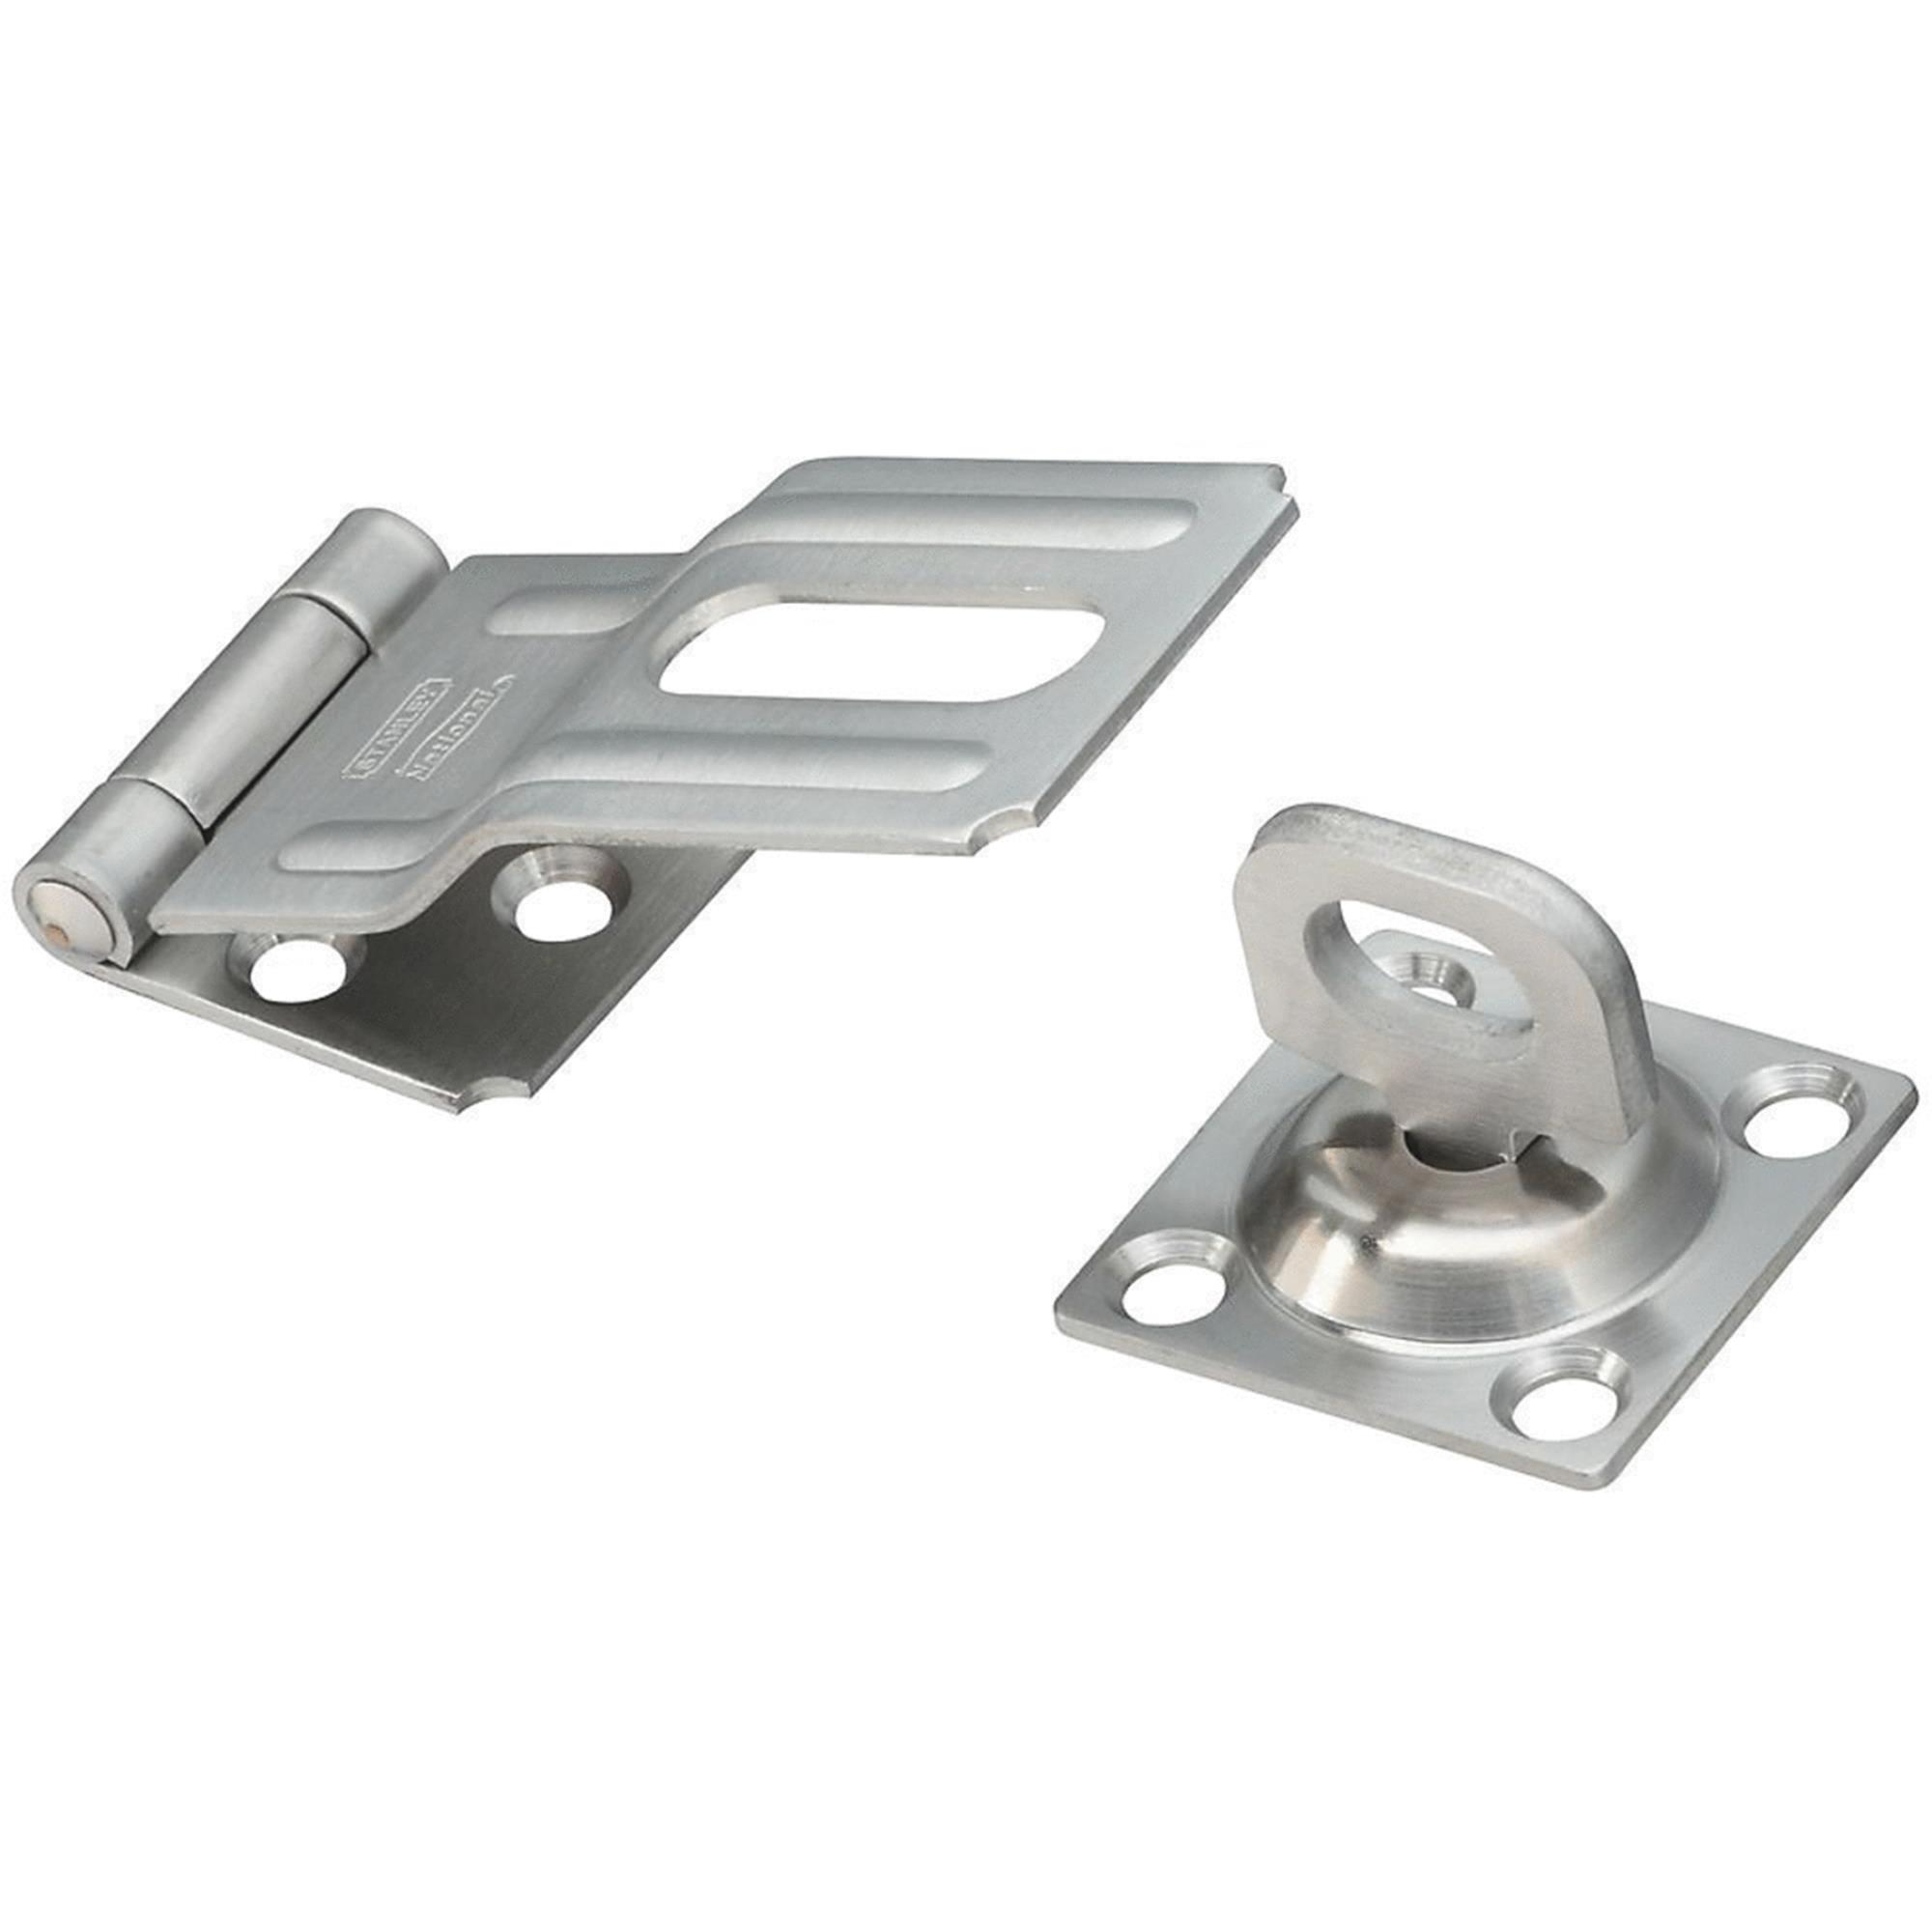 Stainless Steel Swivel Hasp by National Mfg.